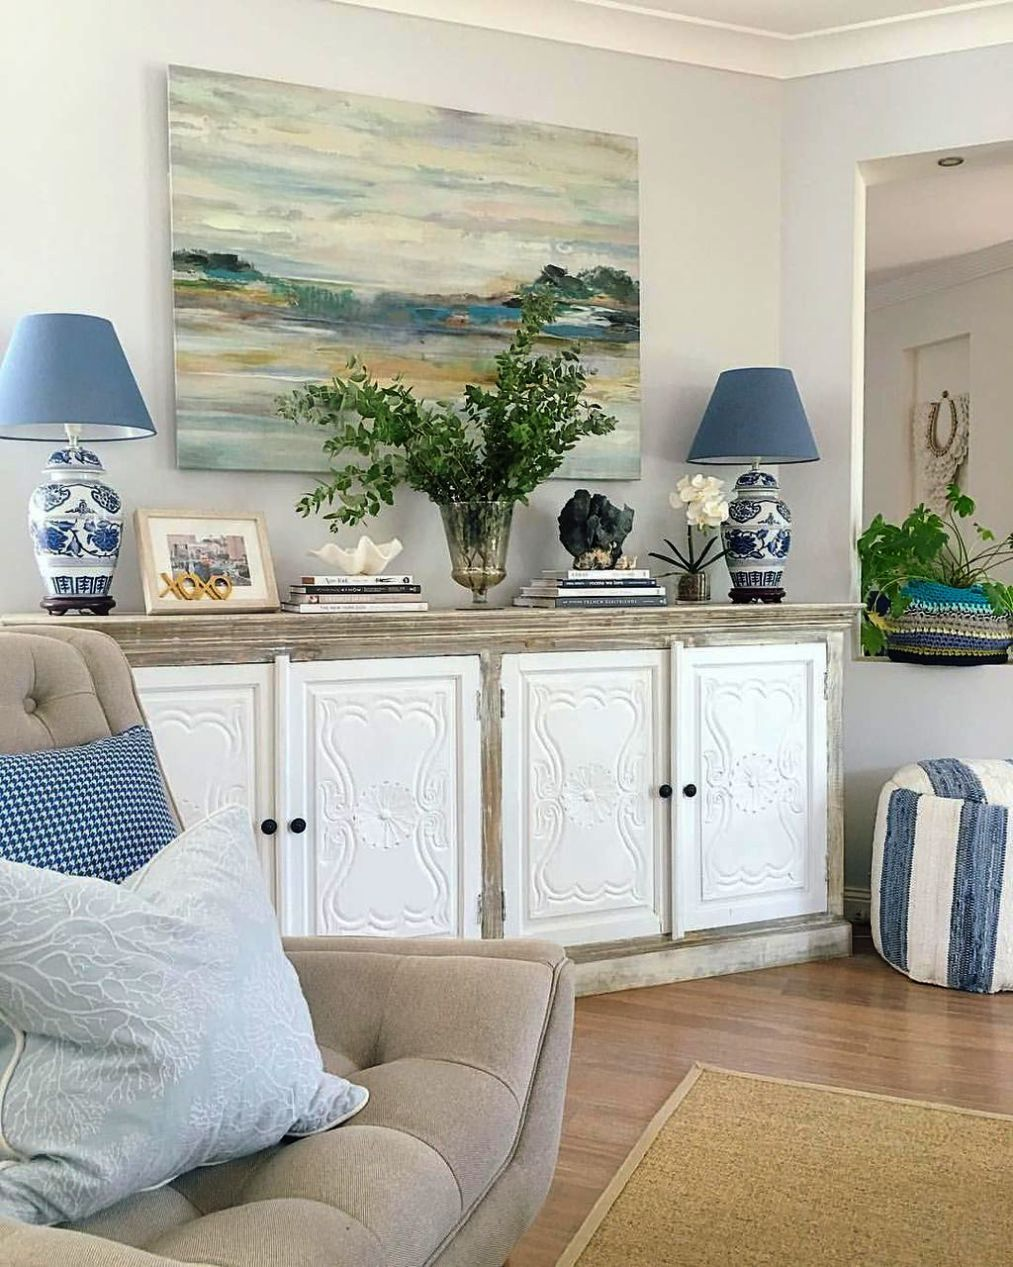 Home Decor Stores Near Rohini Coastal Cottages Holiday Lets Coastal Cottages For Sale Suffolk Below Coastal Decorating Living Room Home Decor Living Room Diy